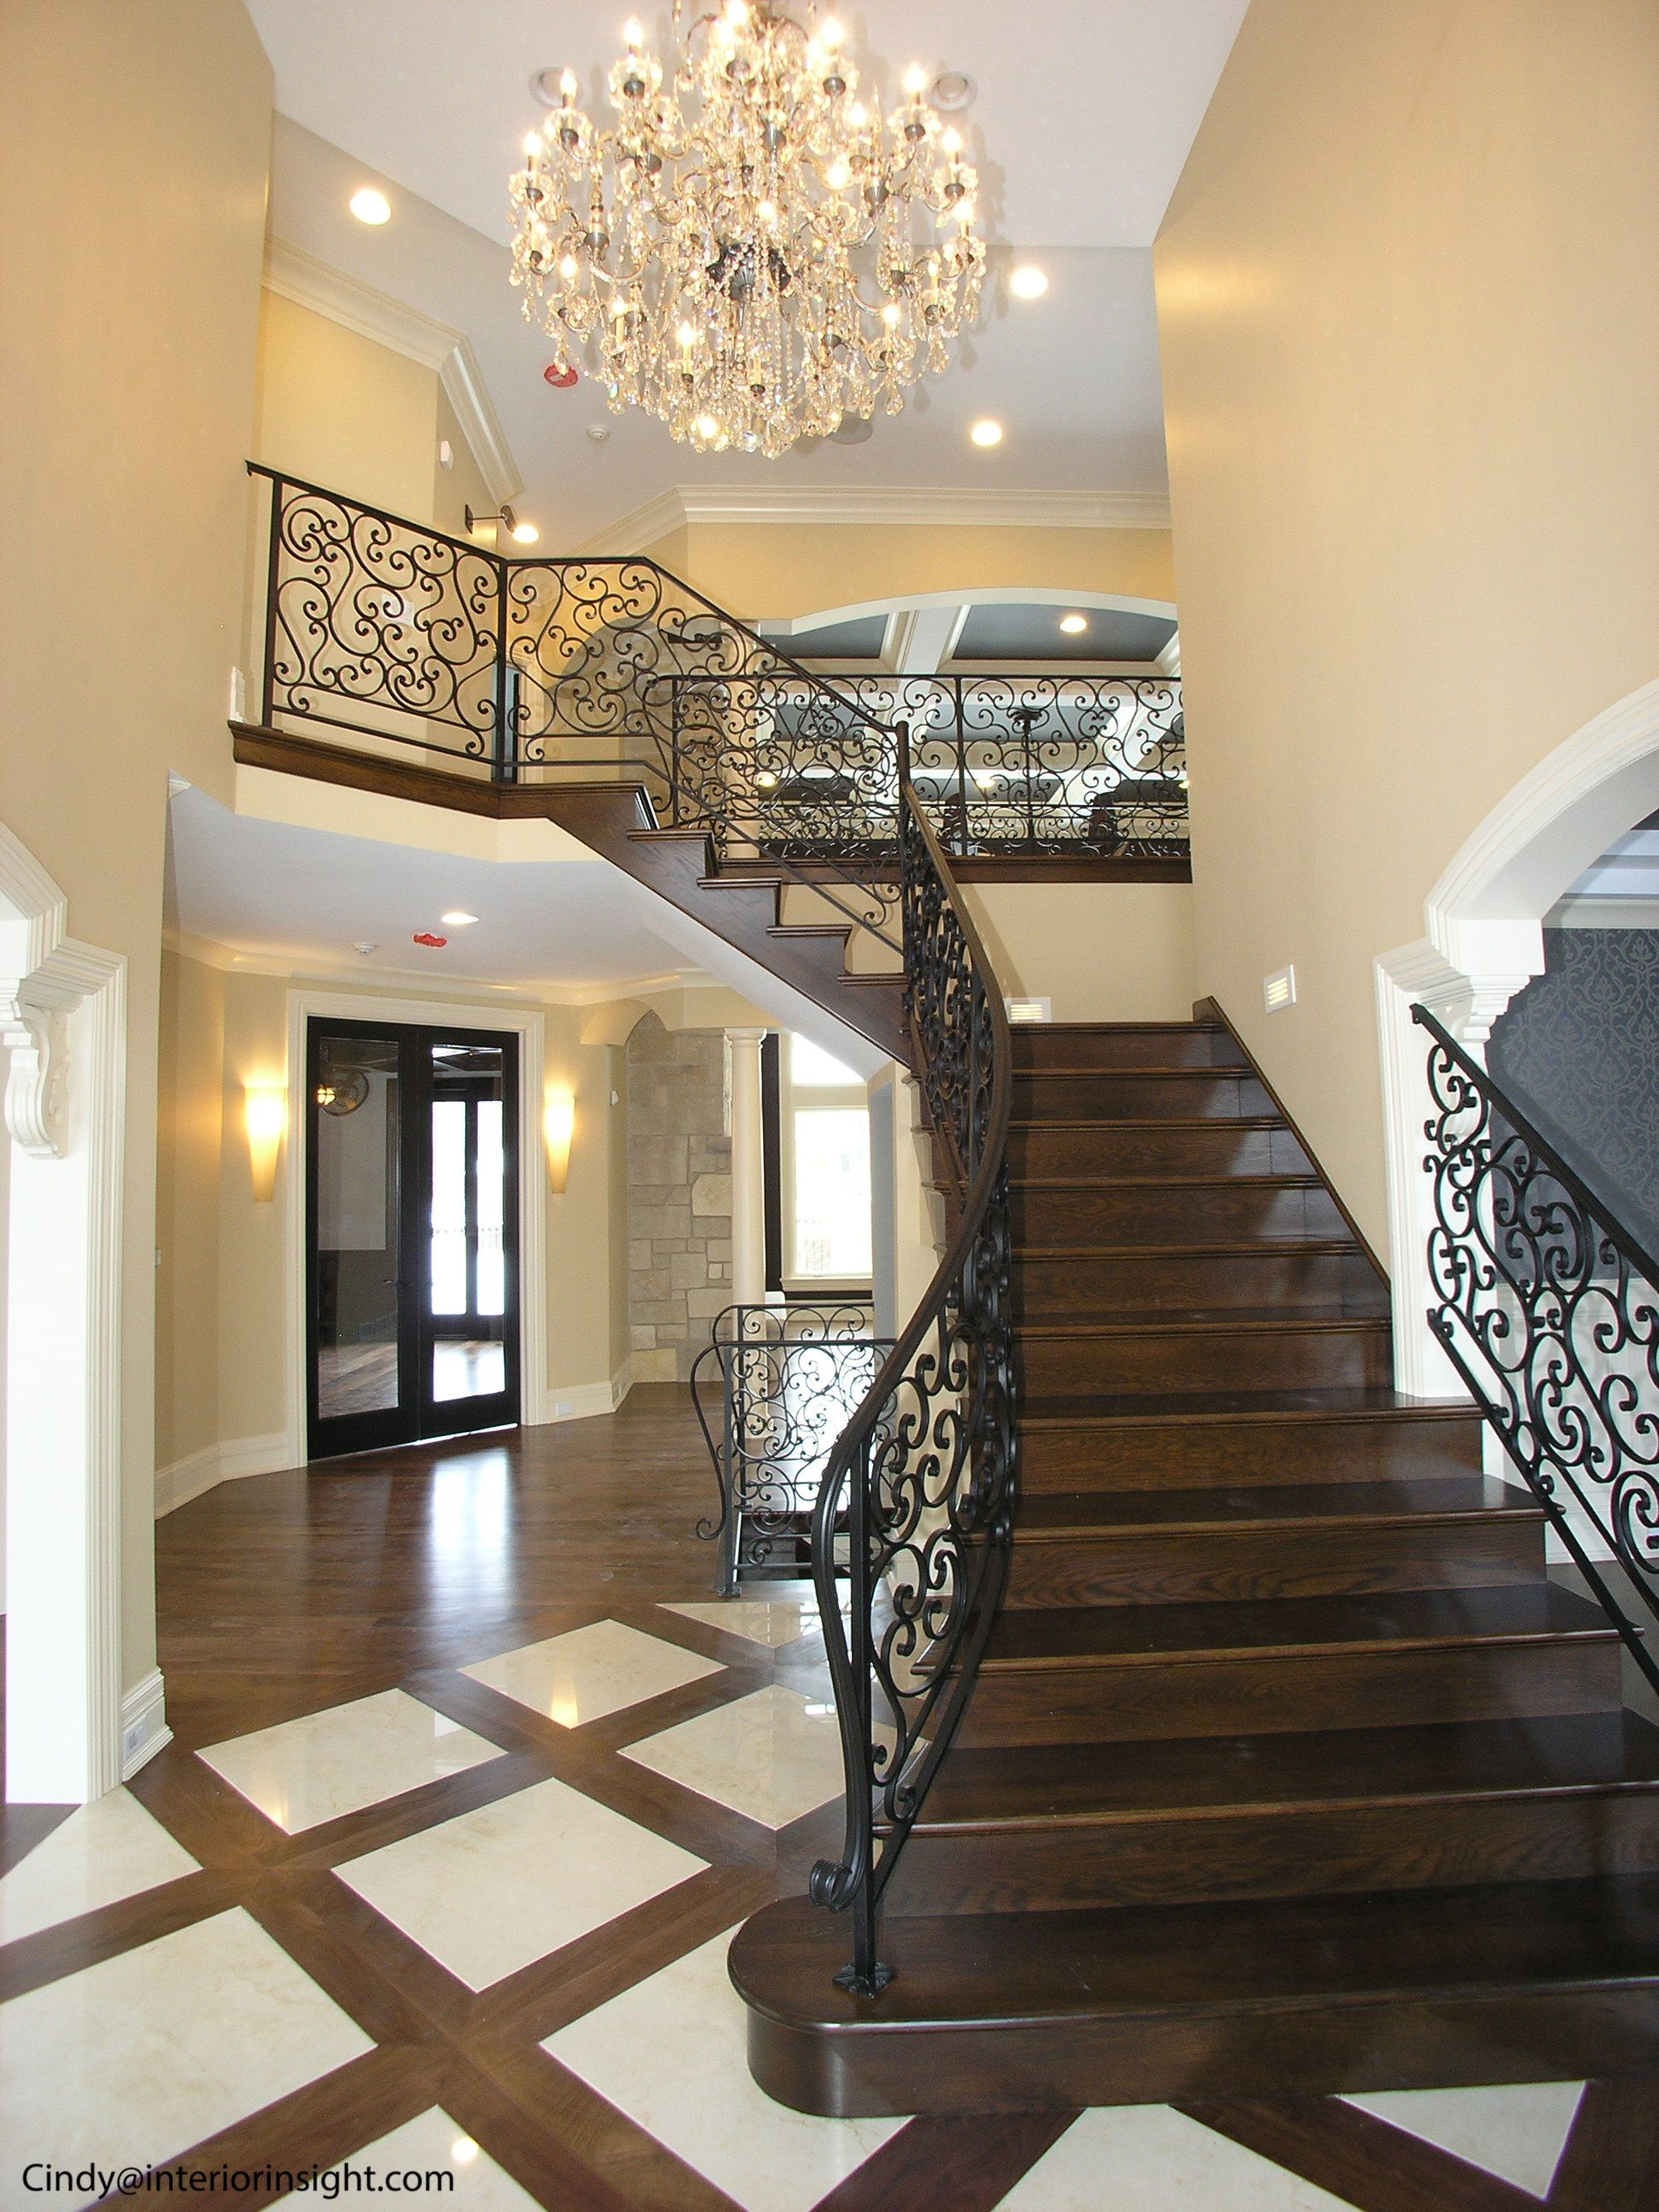 Foyer Lighting Ideas Pictures : Story foyer with curved iron railings and wooden